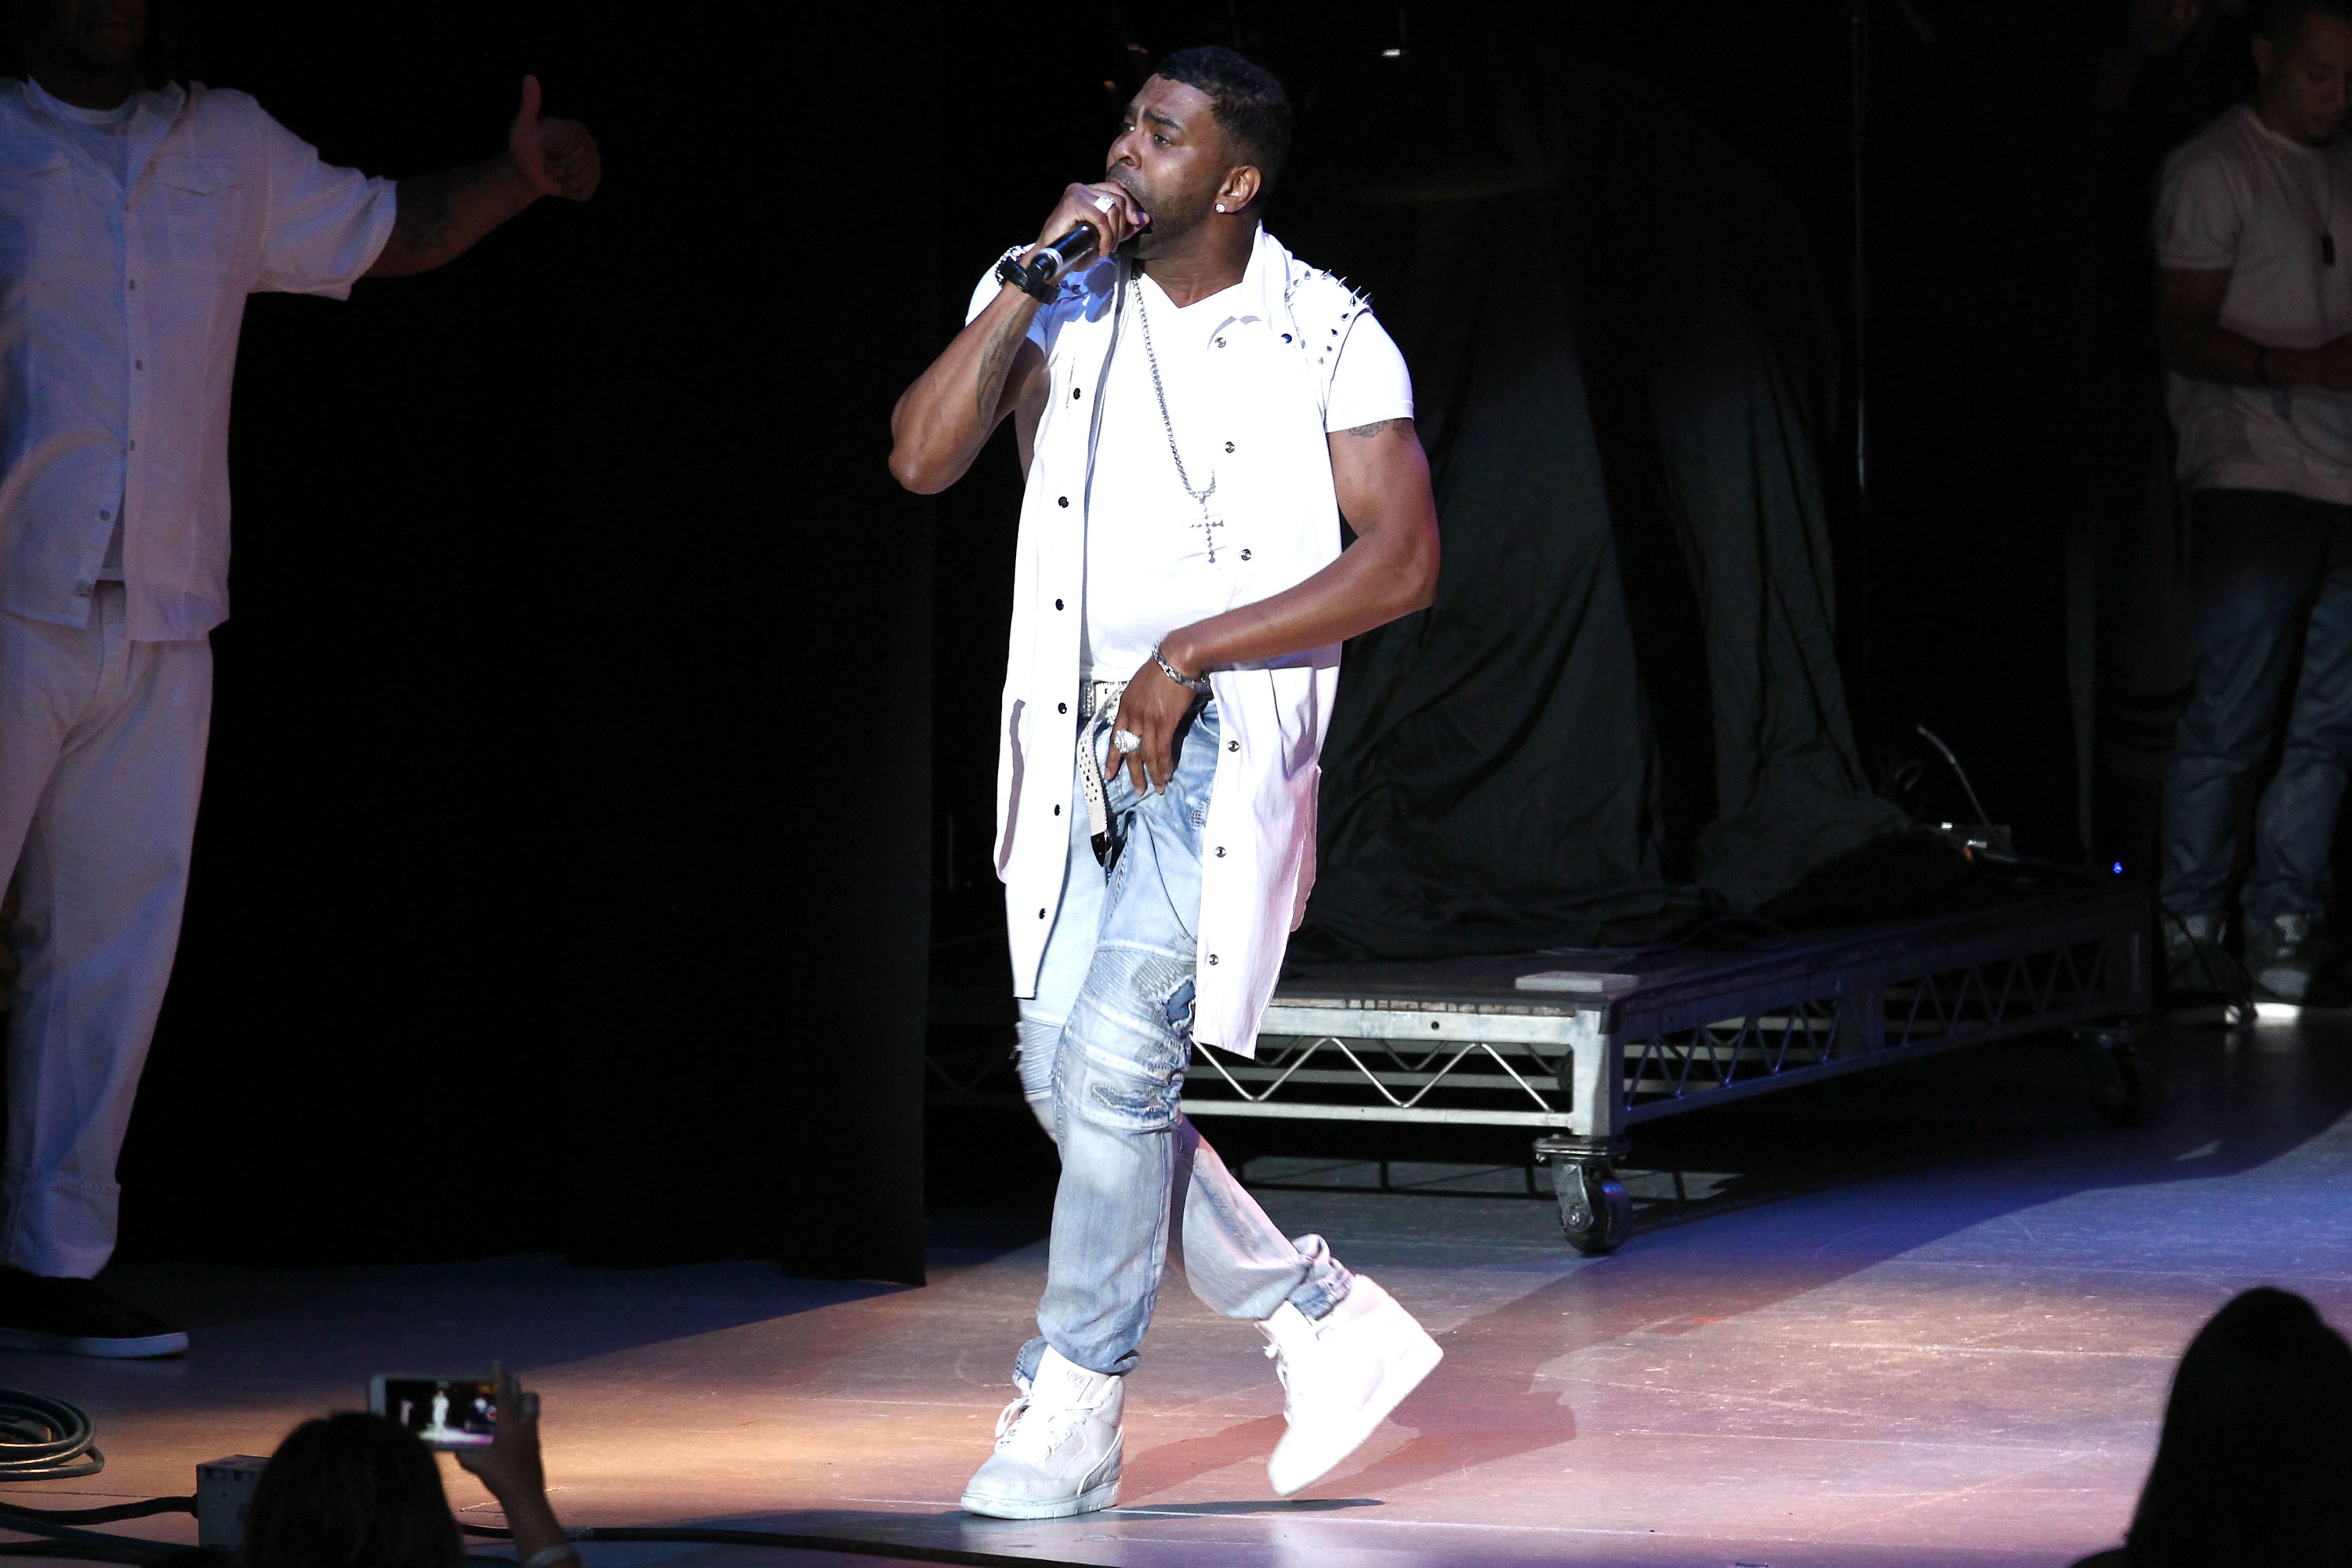 94.7 The WAVE's Soulful Summer Concert At The Greek